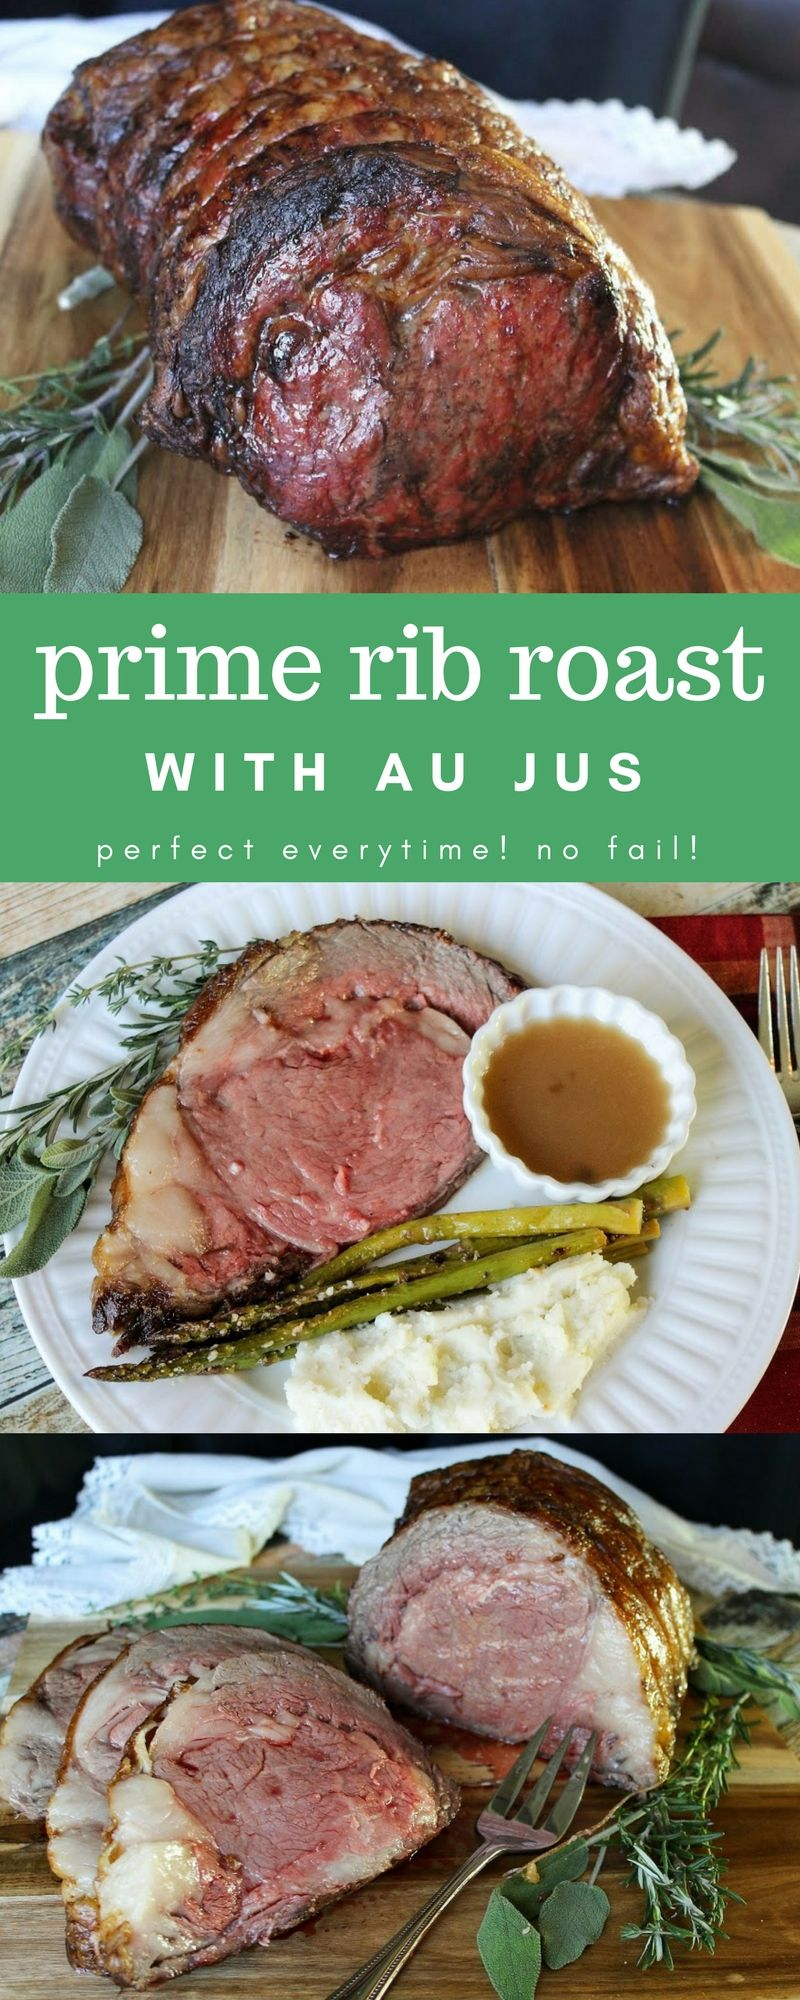 Your new go-to prime rib roast recipe with au jus! It's perfect every time, no fail! #primerib #primeribroast #dinnertime #recipes #christmasdinner #dinnerideas